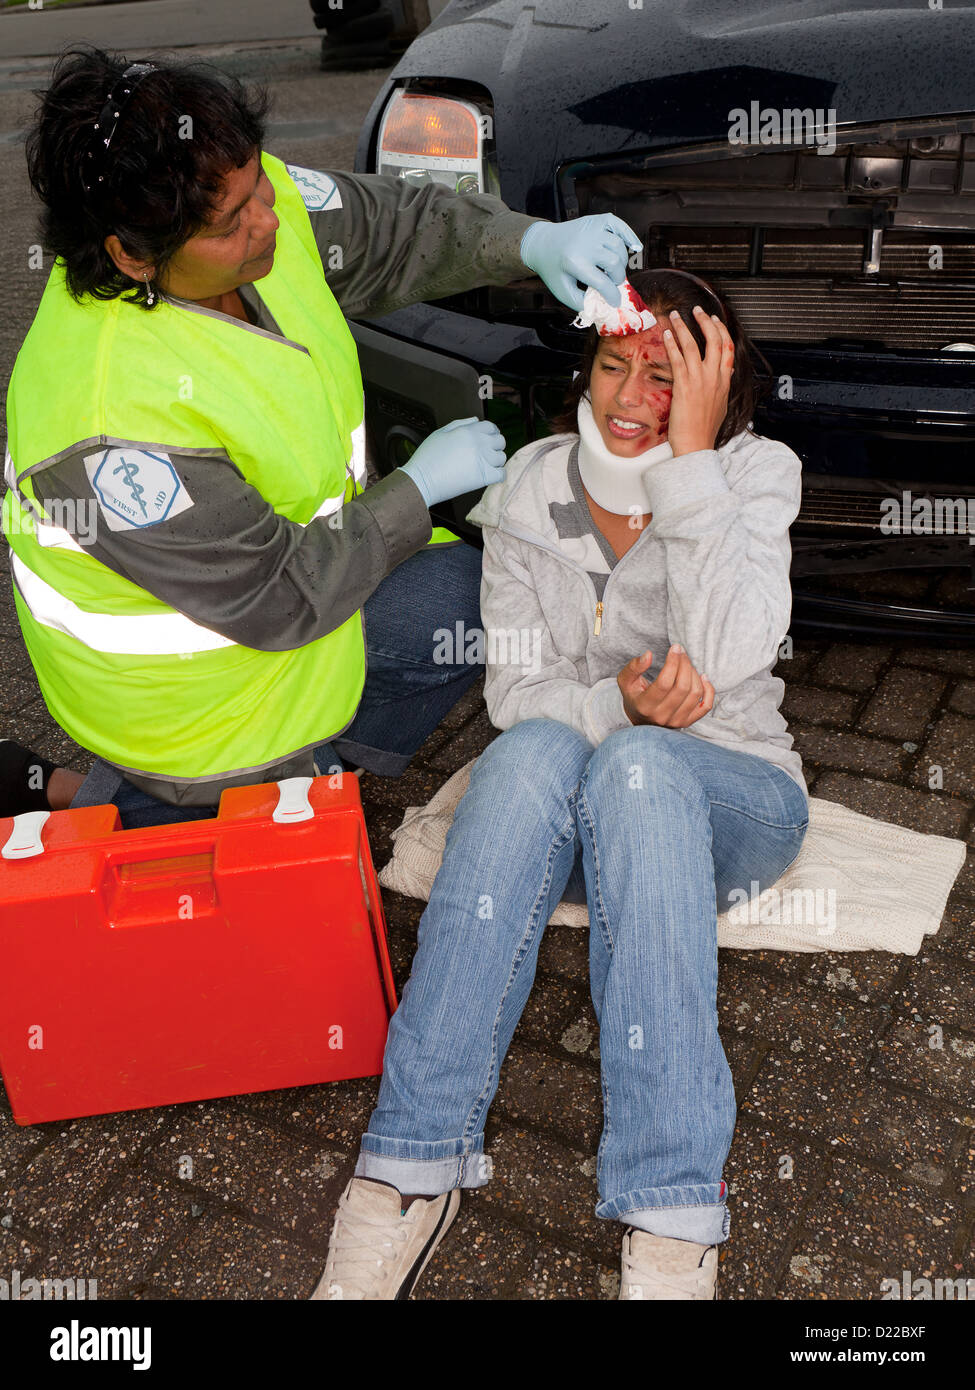 Female paramedic attending to a young car crash victim (the sleeve badges have been replaced by a non existing logo) - Stock Image